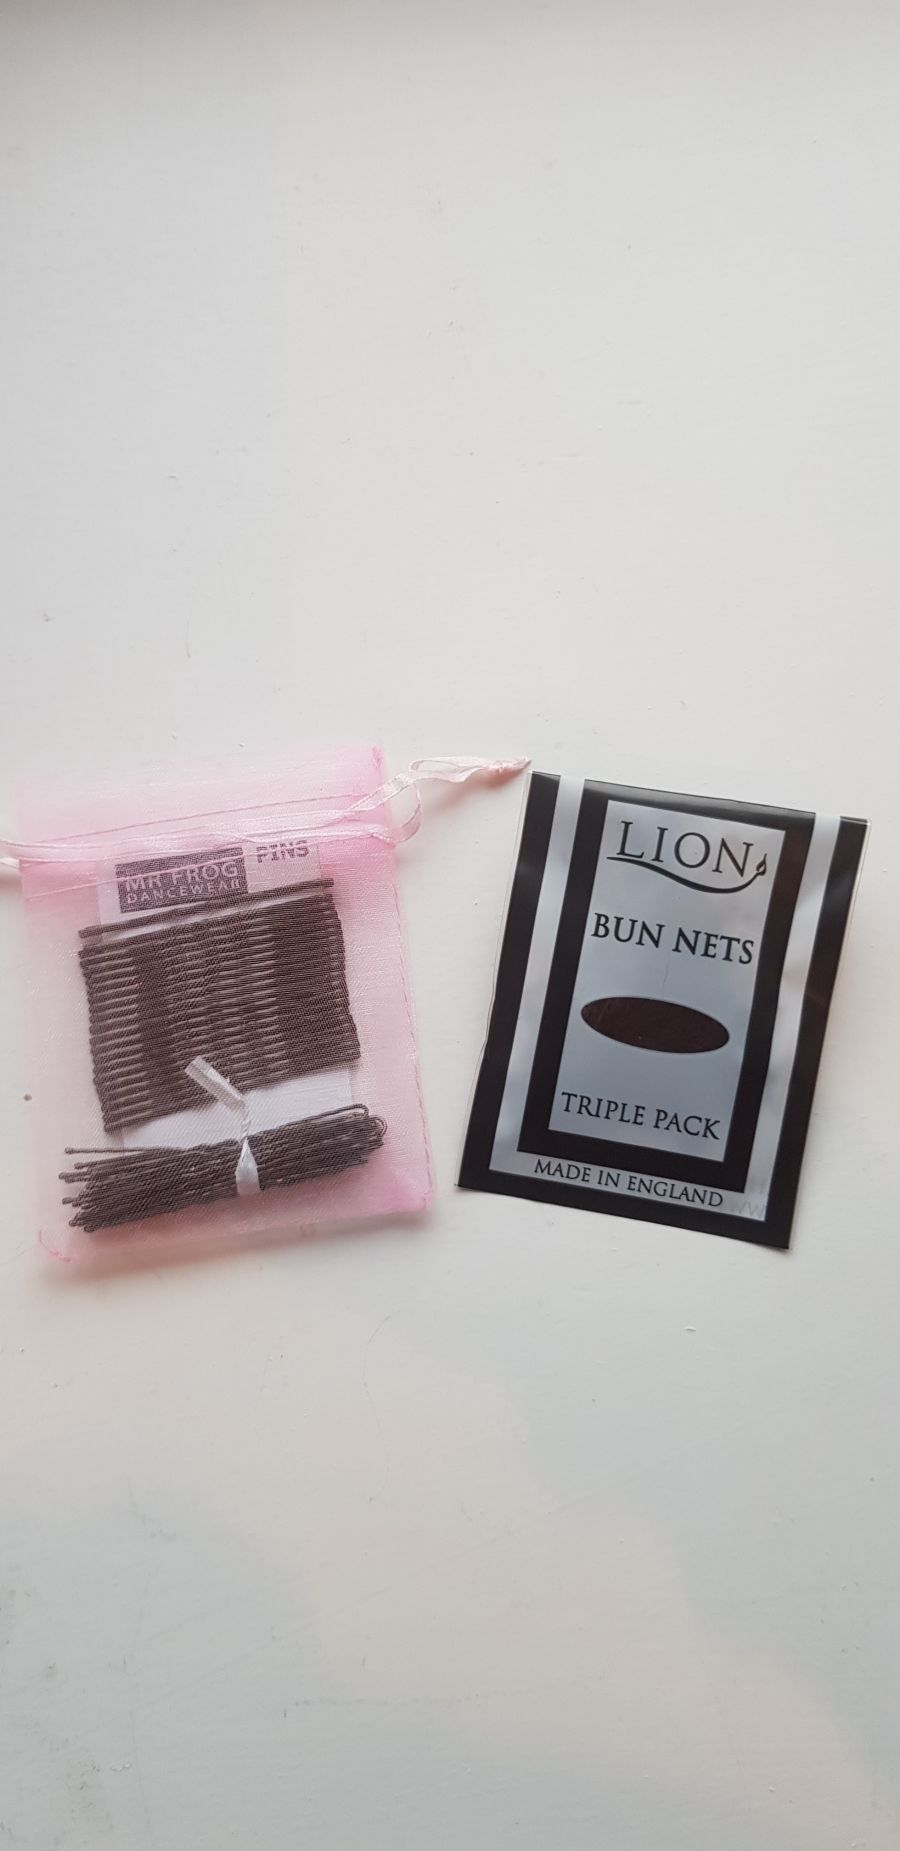 Bun nets, clips & pin pack